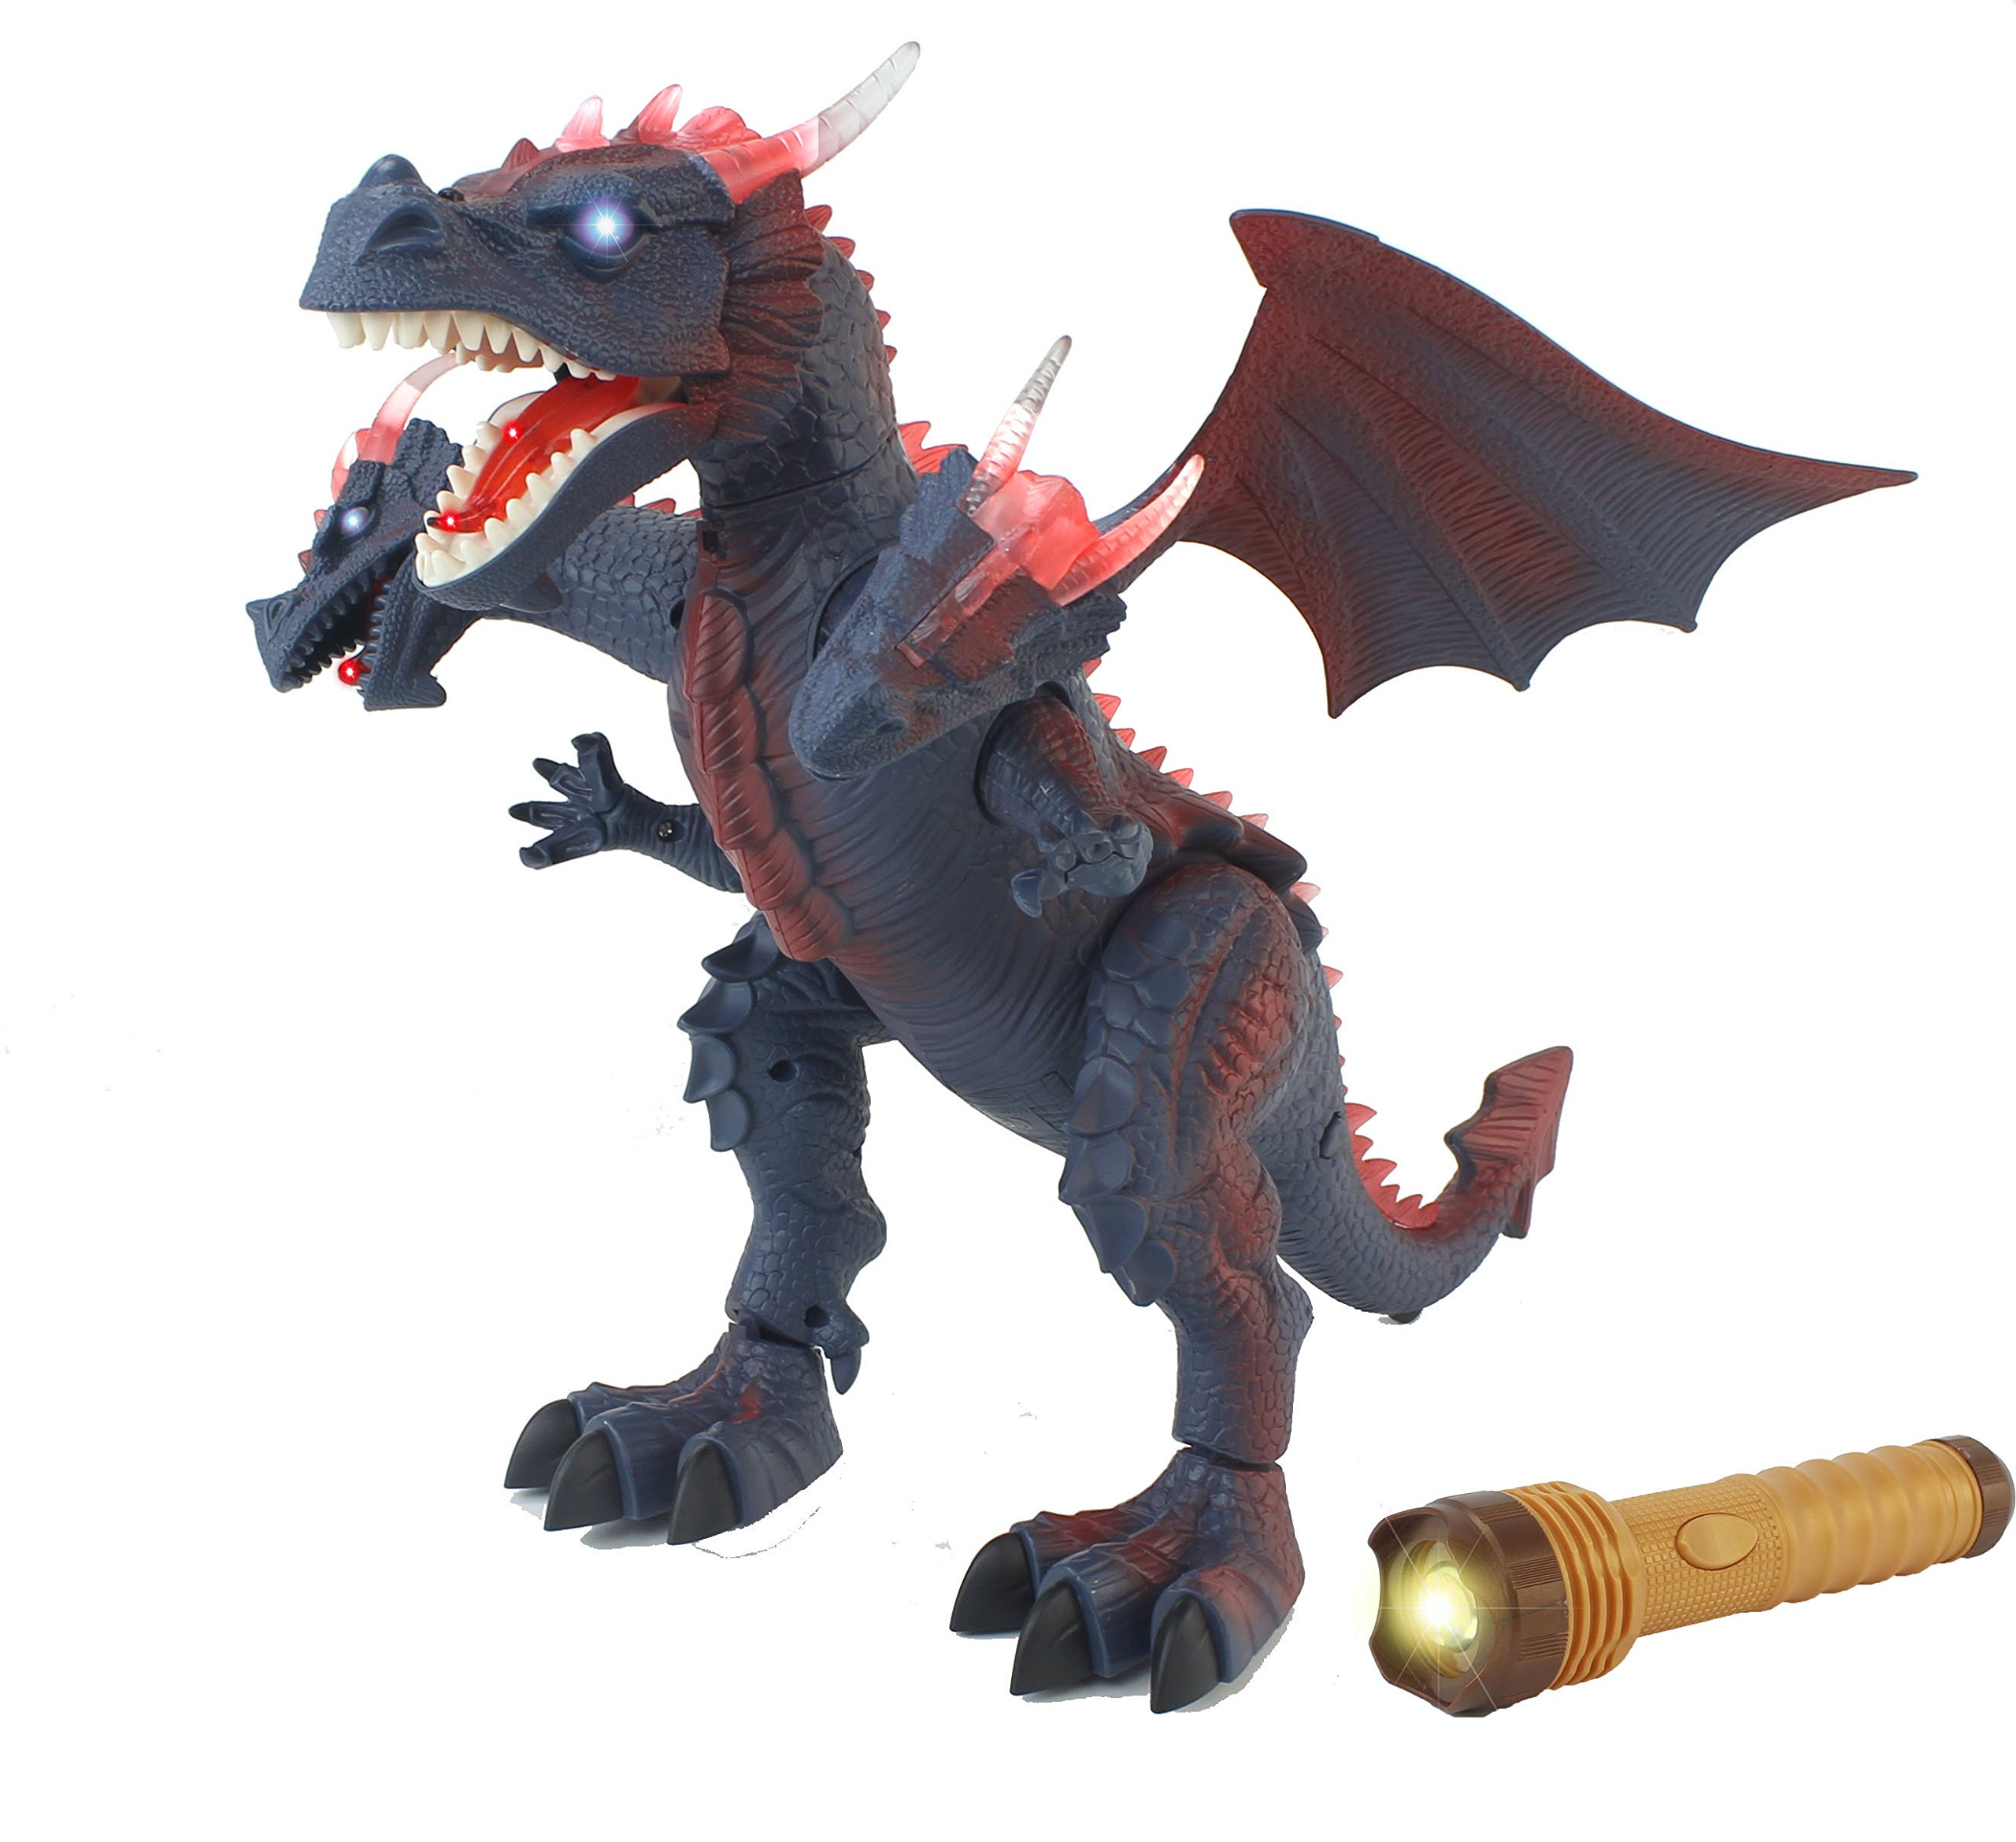 The New World of Dinosaurs Battery Operated Remote Control Toy RC Three Headed Dragon w/ Lights, Sounds, Walking/Wing/Mouth Action, & Flashlight Remote Contro by Velocity Toys (Image #1)